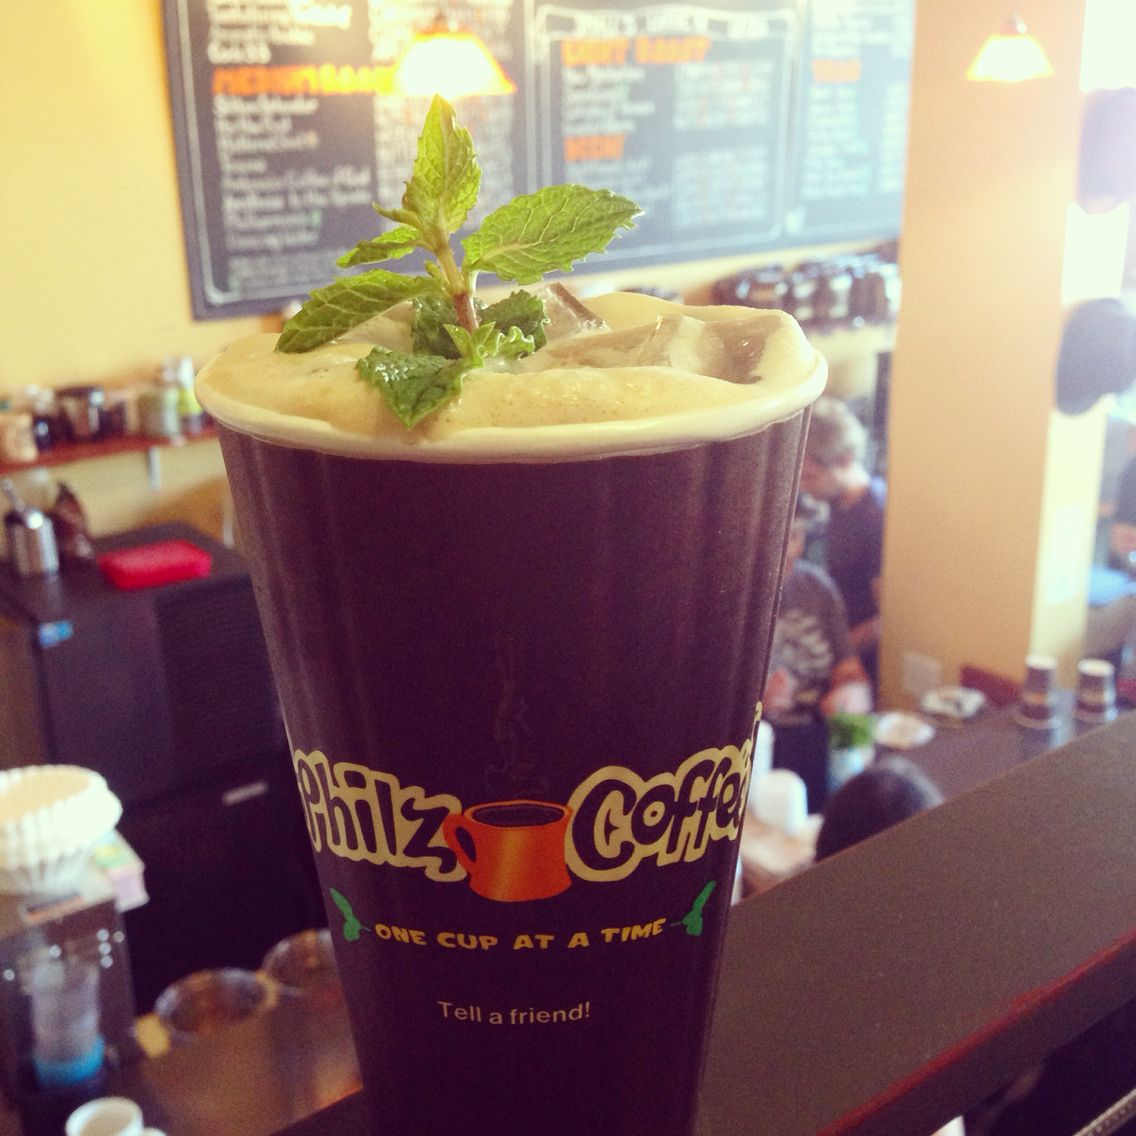 Mint Mojito Or Ecstatic From Phiz Coffee Is Incredible Berkeley Sf Palo Alto Mint Mojito Philz Coffee Food